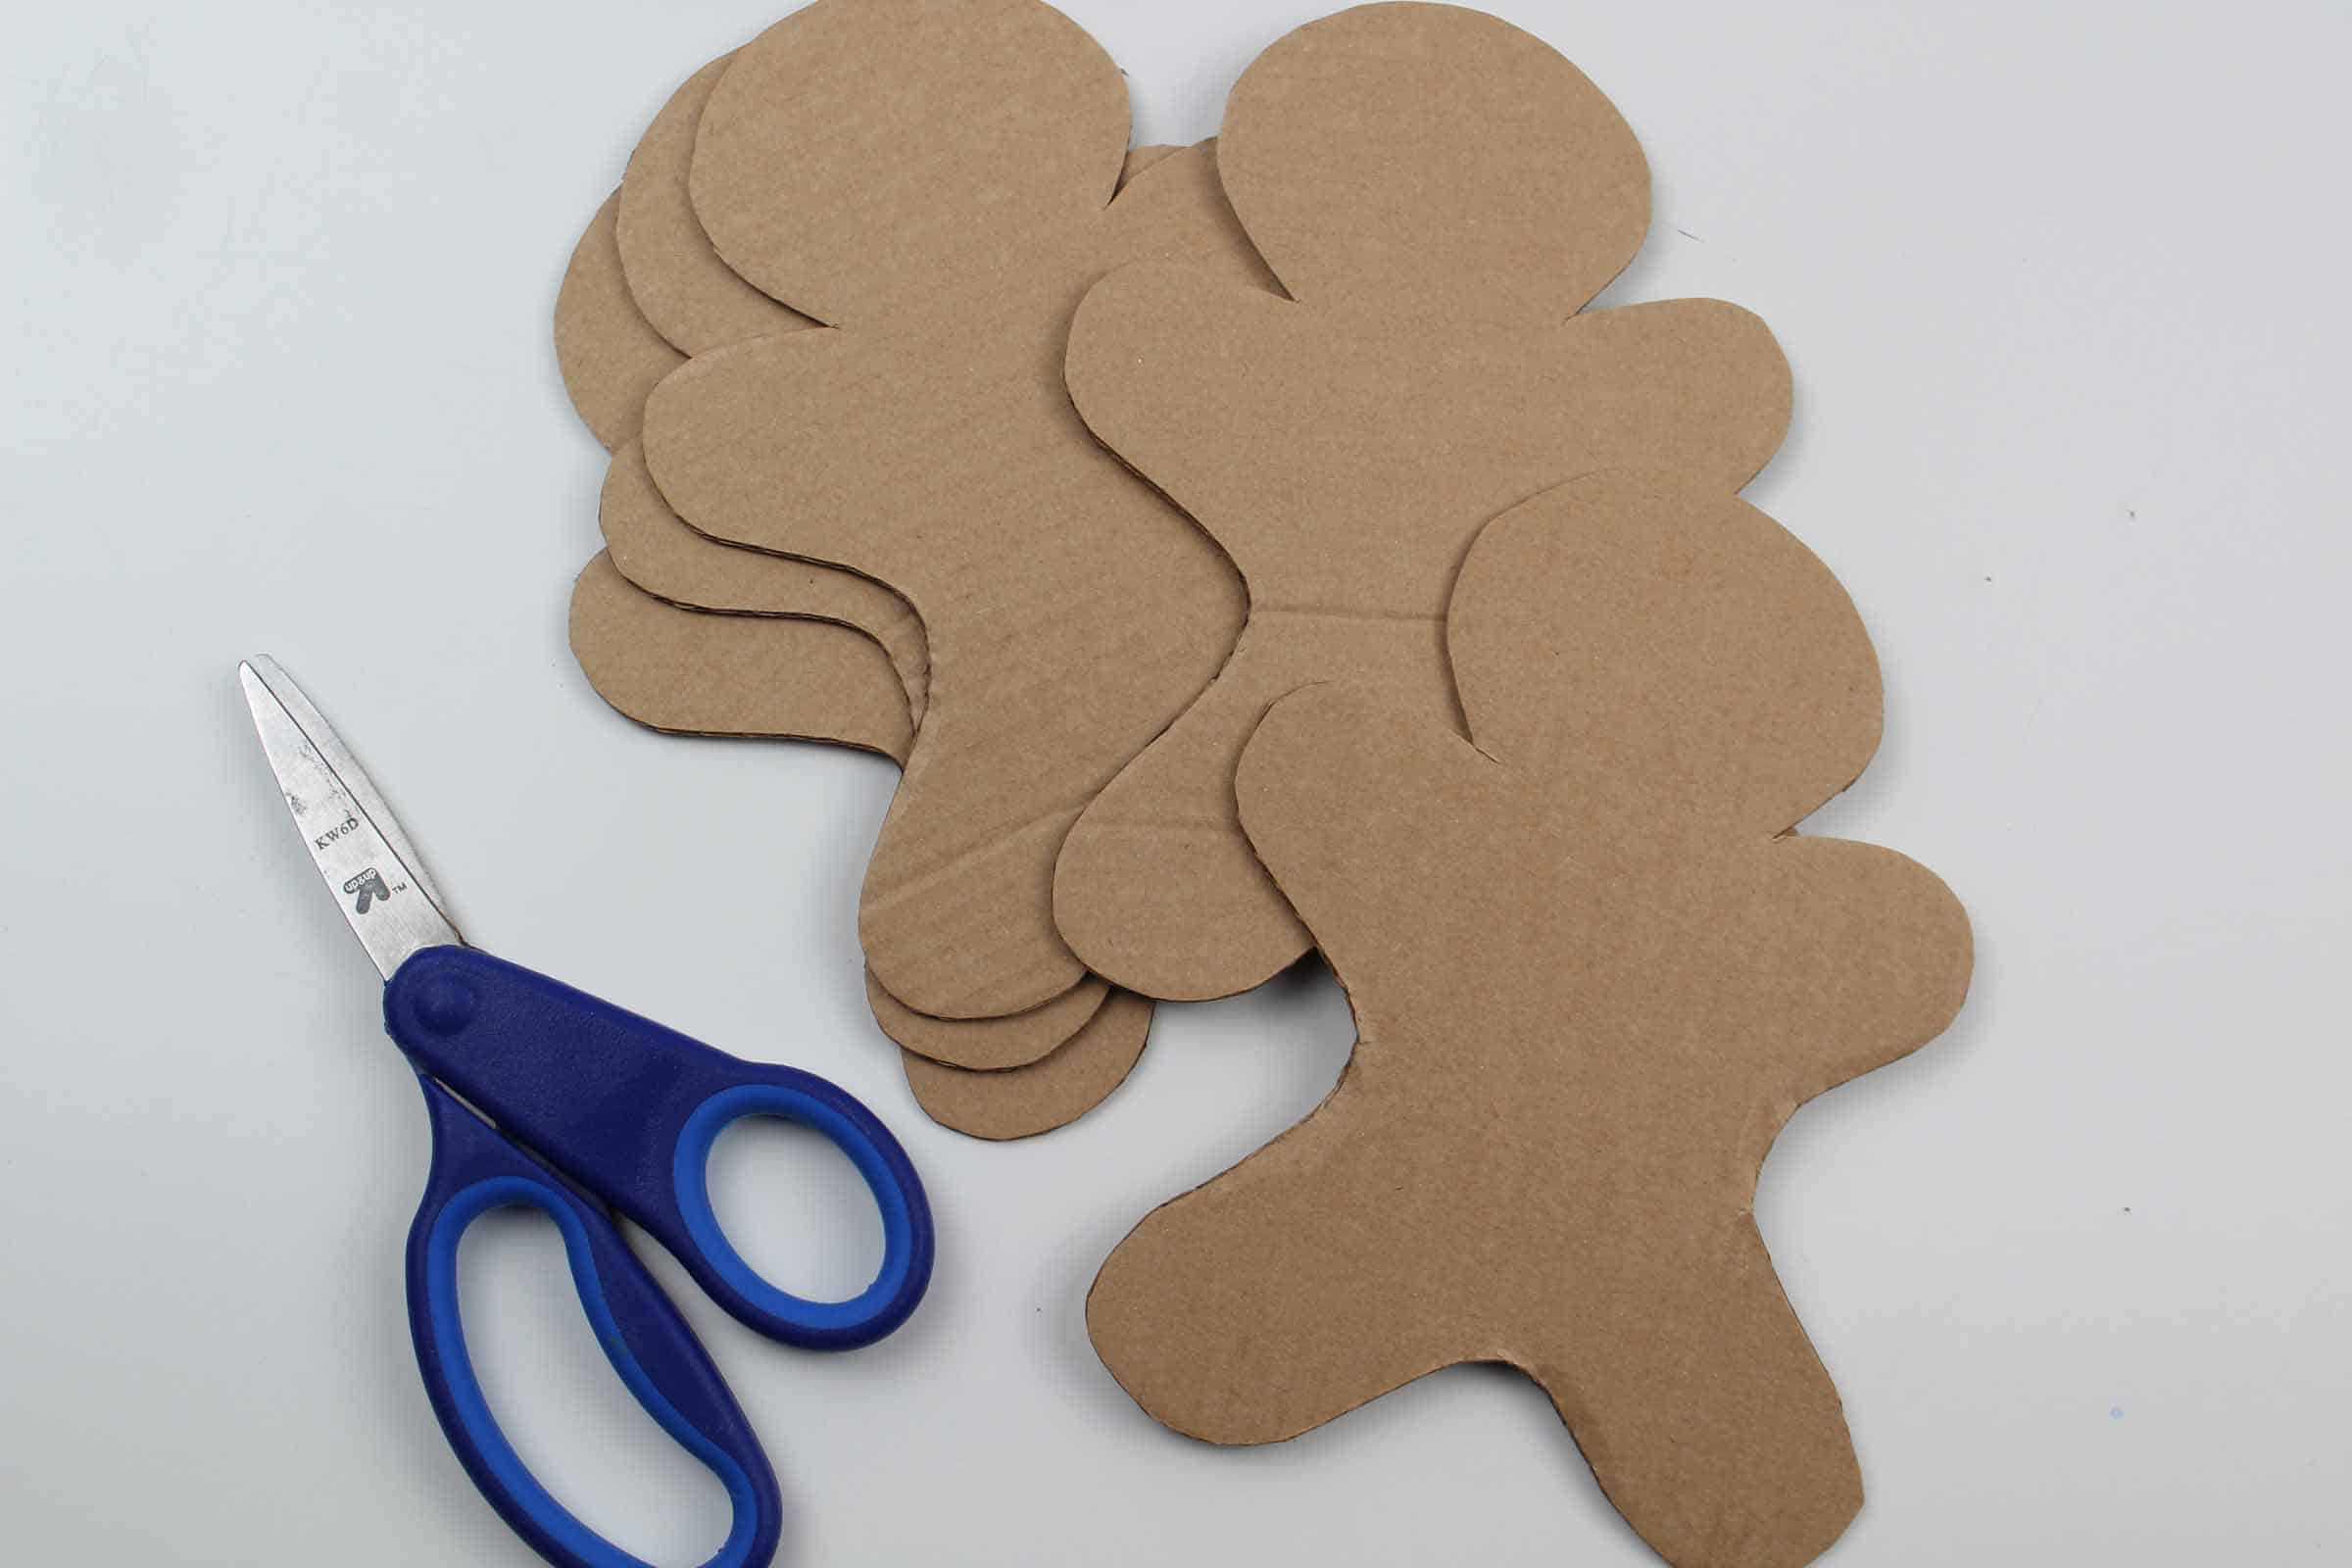 Cardboard shapes of the gingerbread man